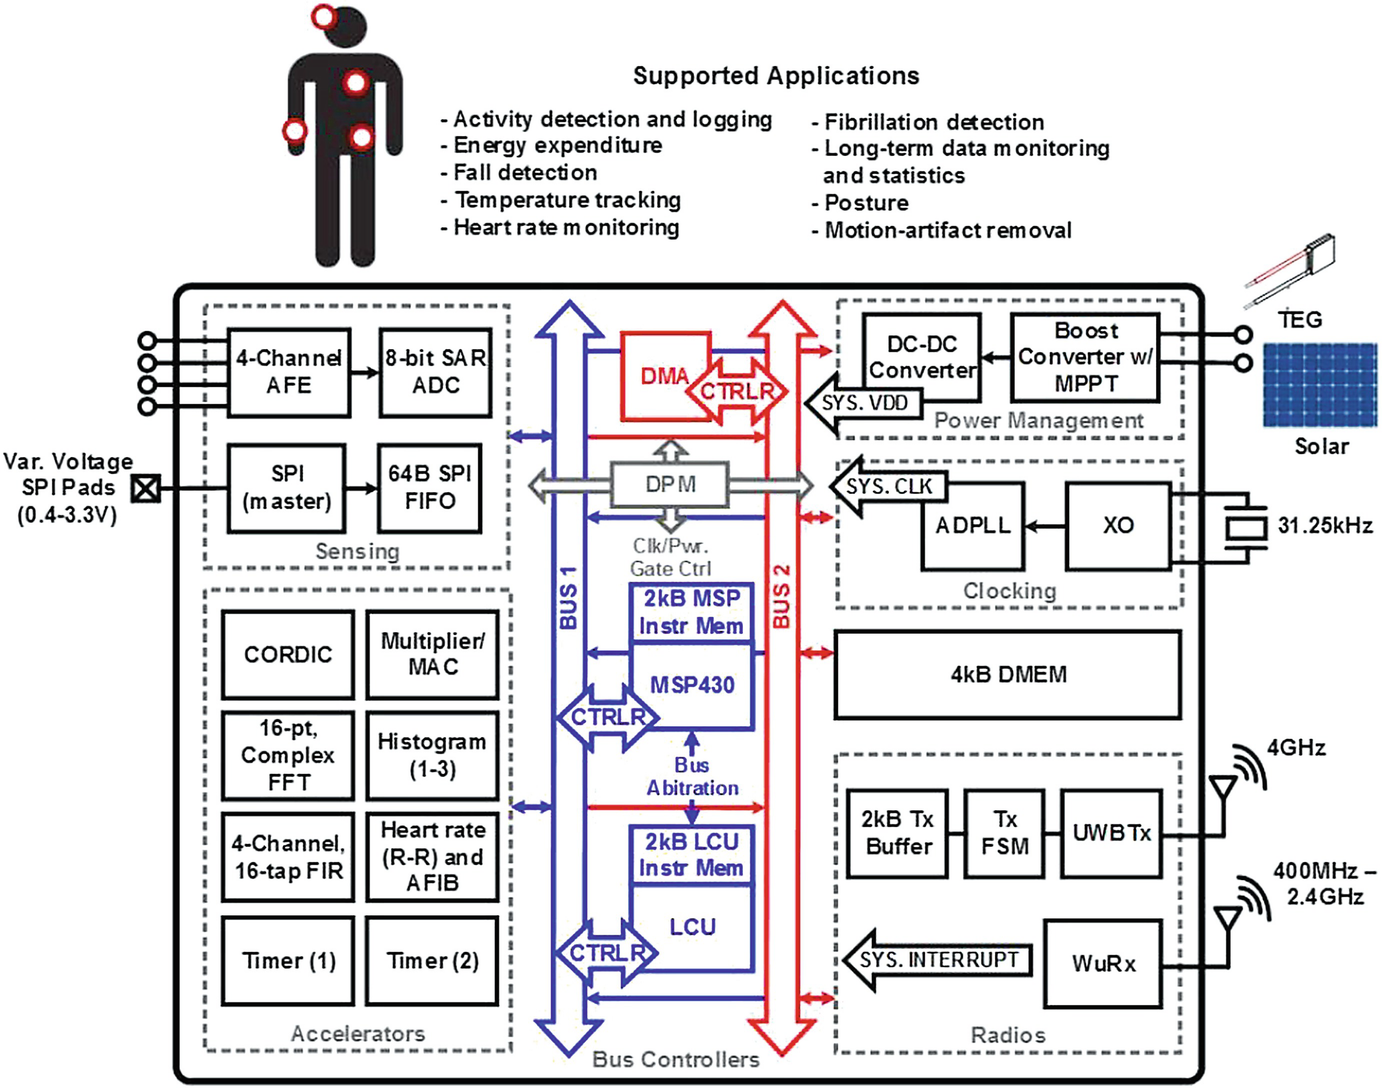 Background On Ecg Processing Springerlink Heart Rate Monitor Schematic Open Image In New Window